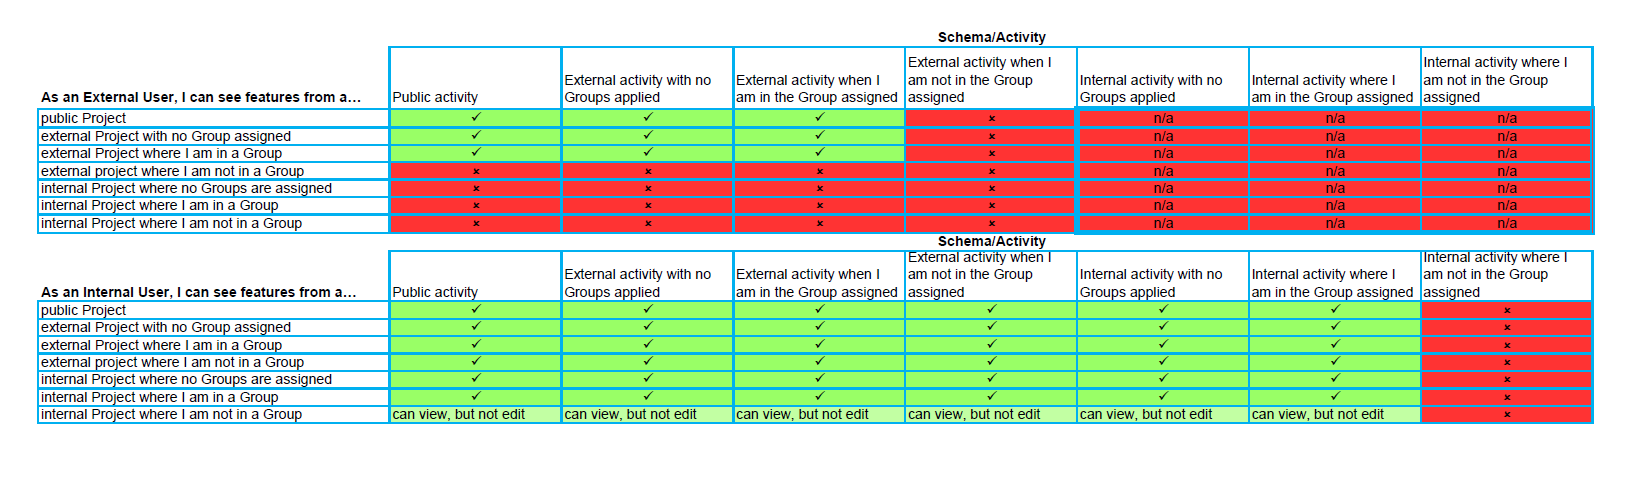 GRID activityfeature permissions matrix for user manual